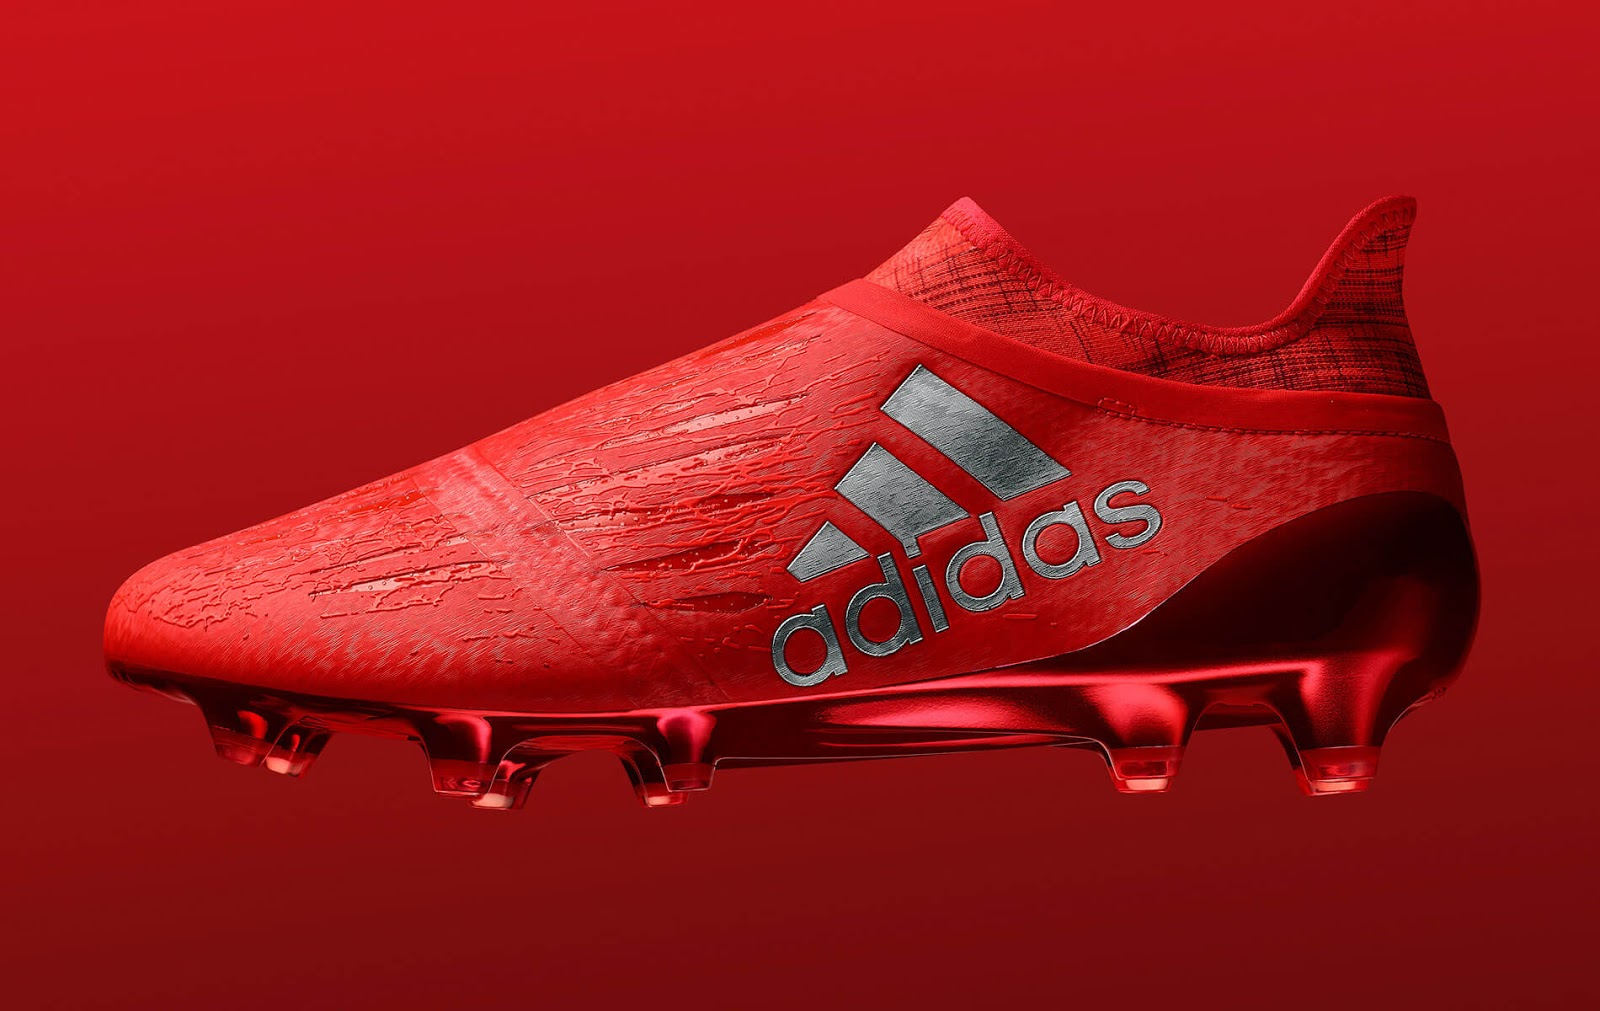 Adidas Speed Of Light 2016 2017 Football Boots Pack